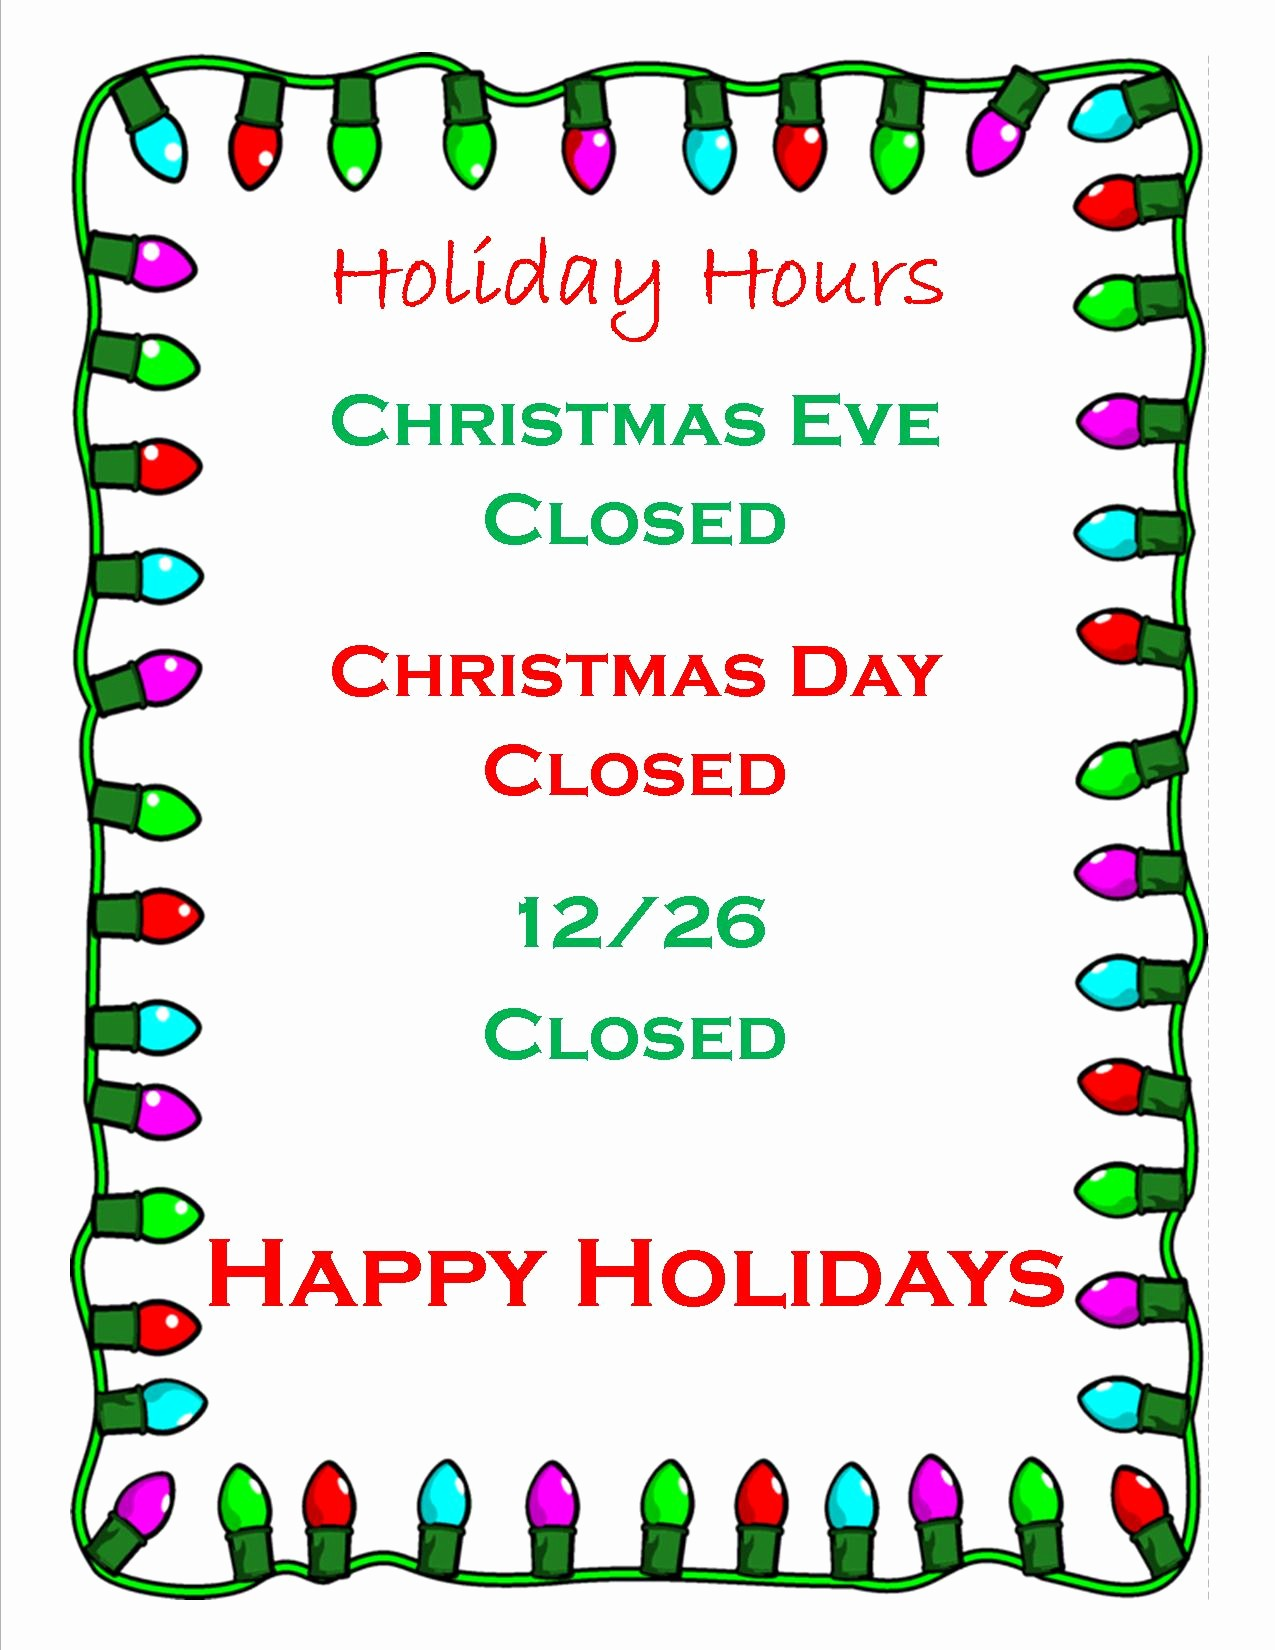 Closed for the Holidays Sign Lovely Business Fice Closed for Holidays Keizer Fire District